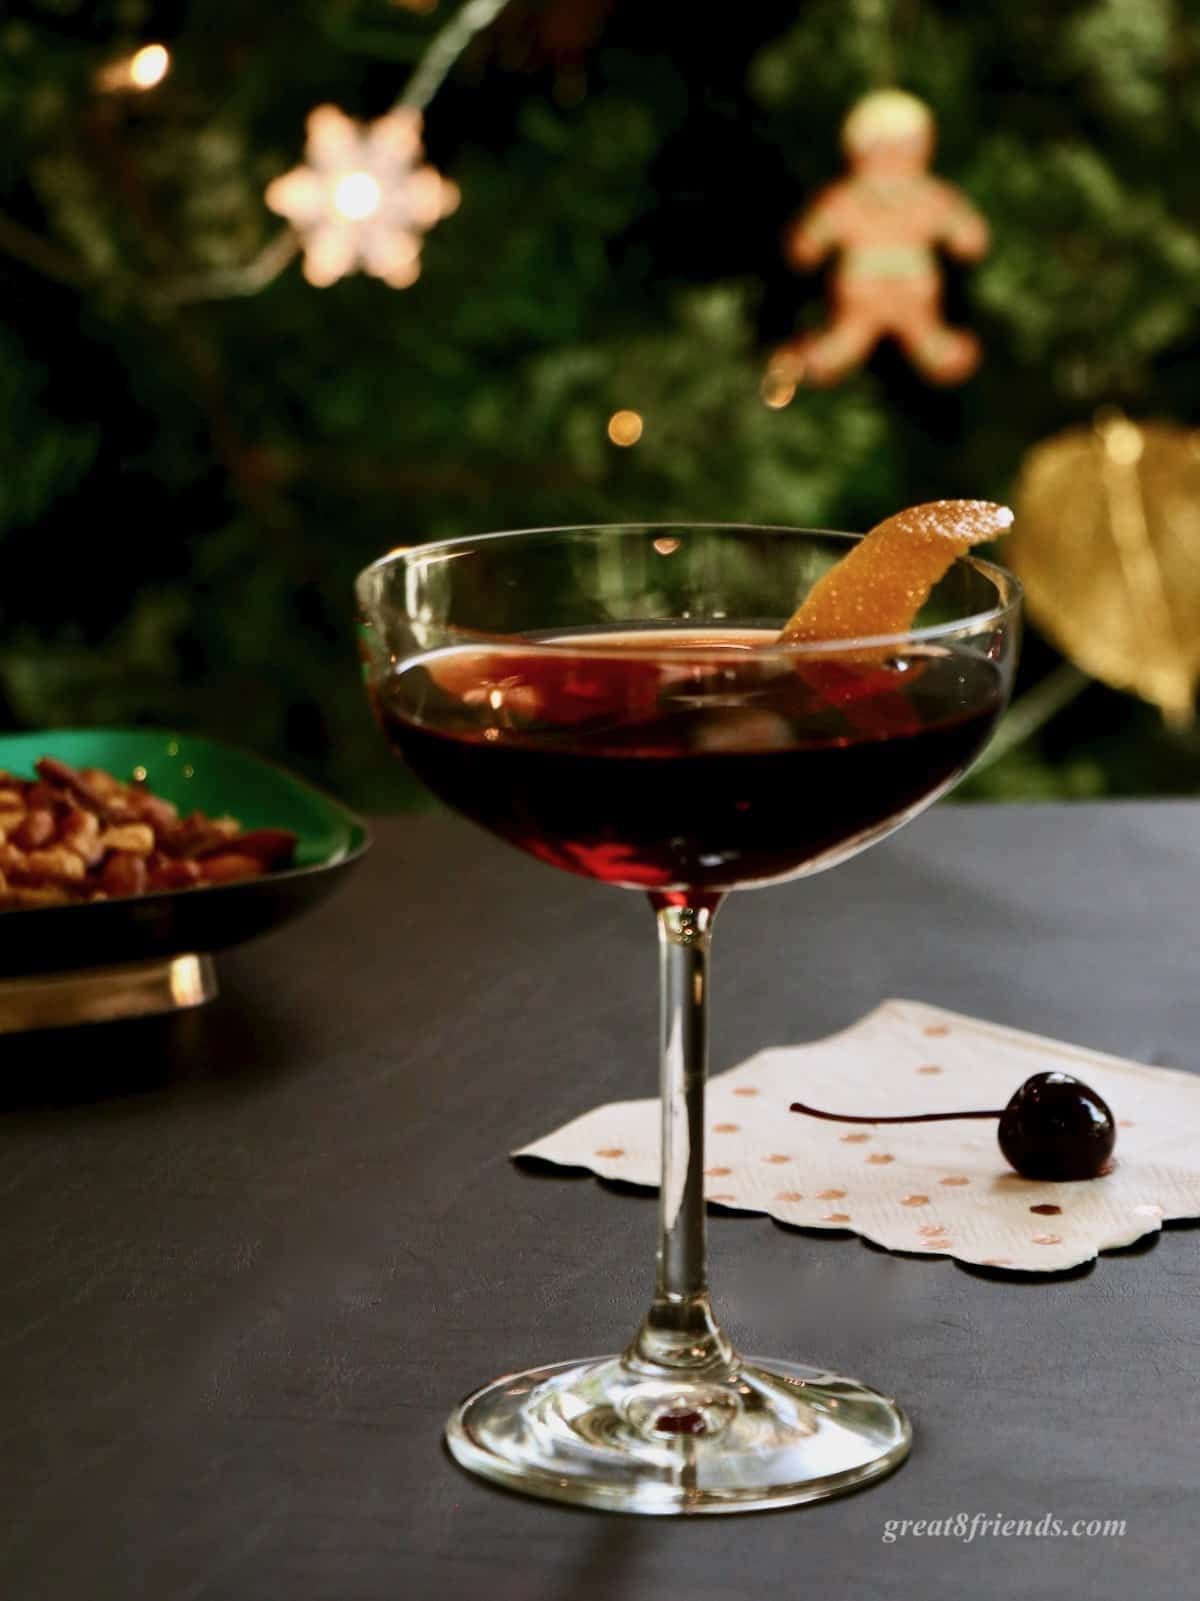 A cherry Manhattan in a coupe glass garnished with orange peel with a cherry on the table and nuts in background.